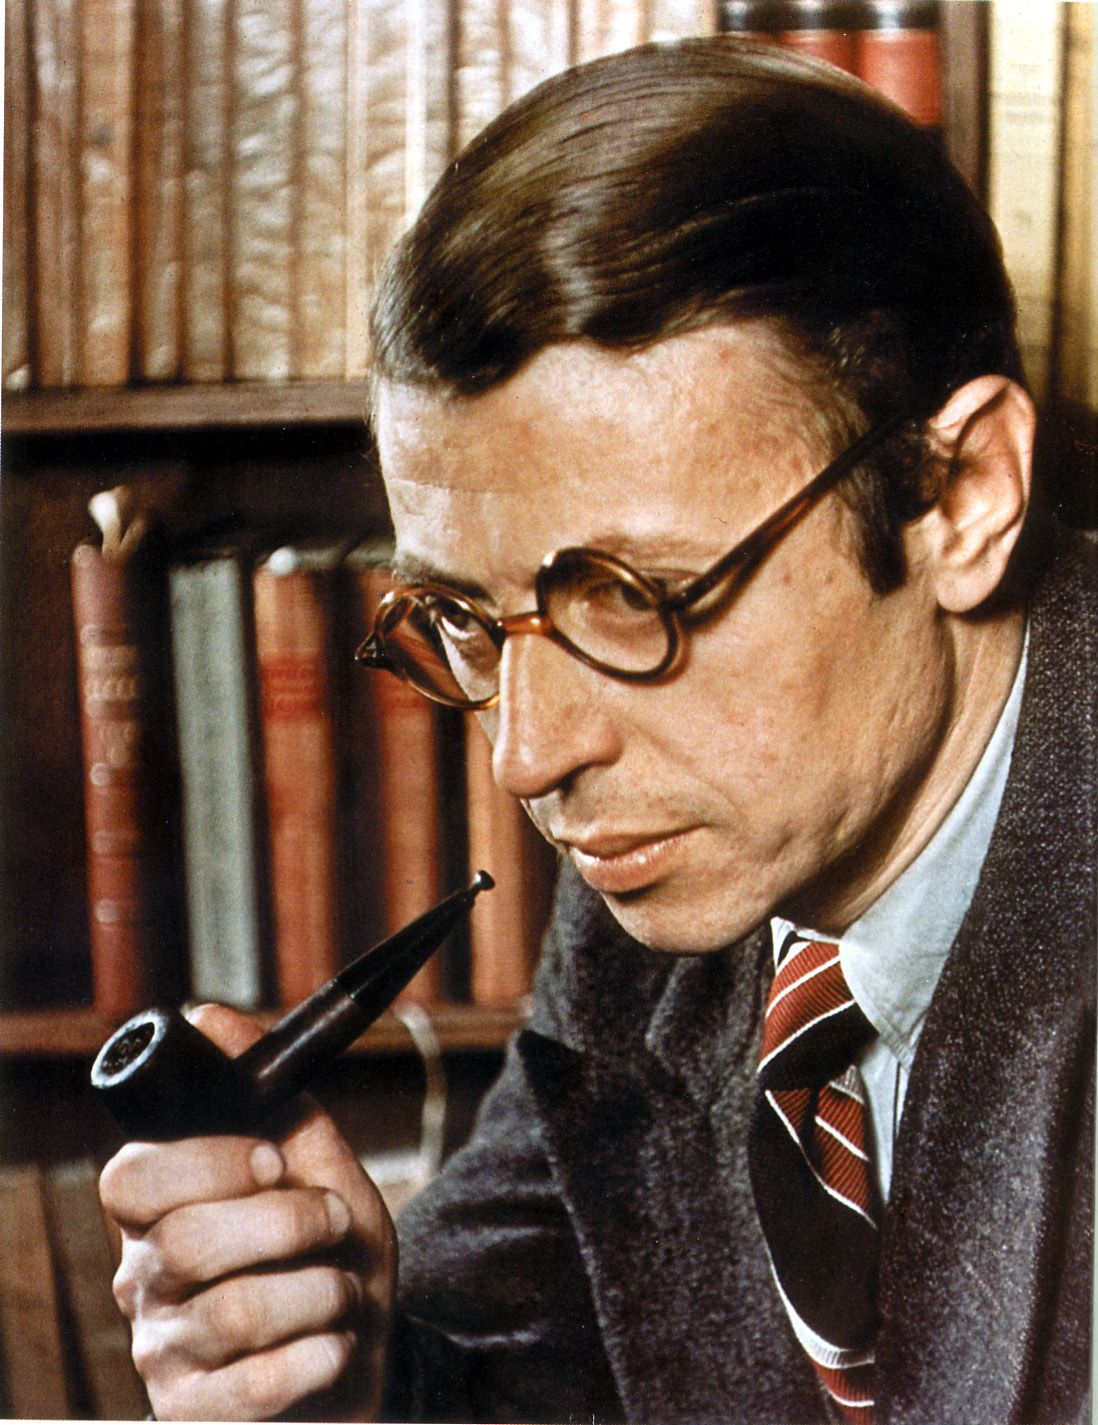 Young Jean Paul Sartre